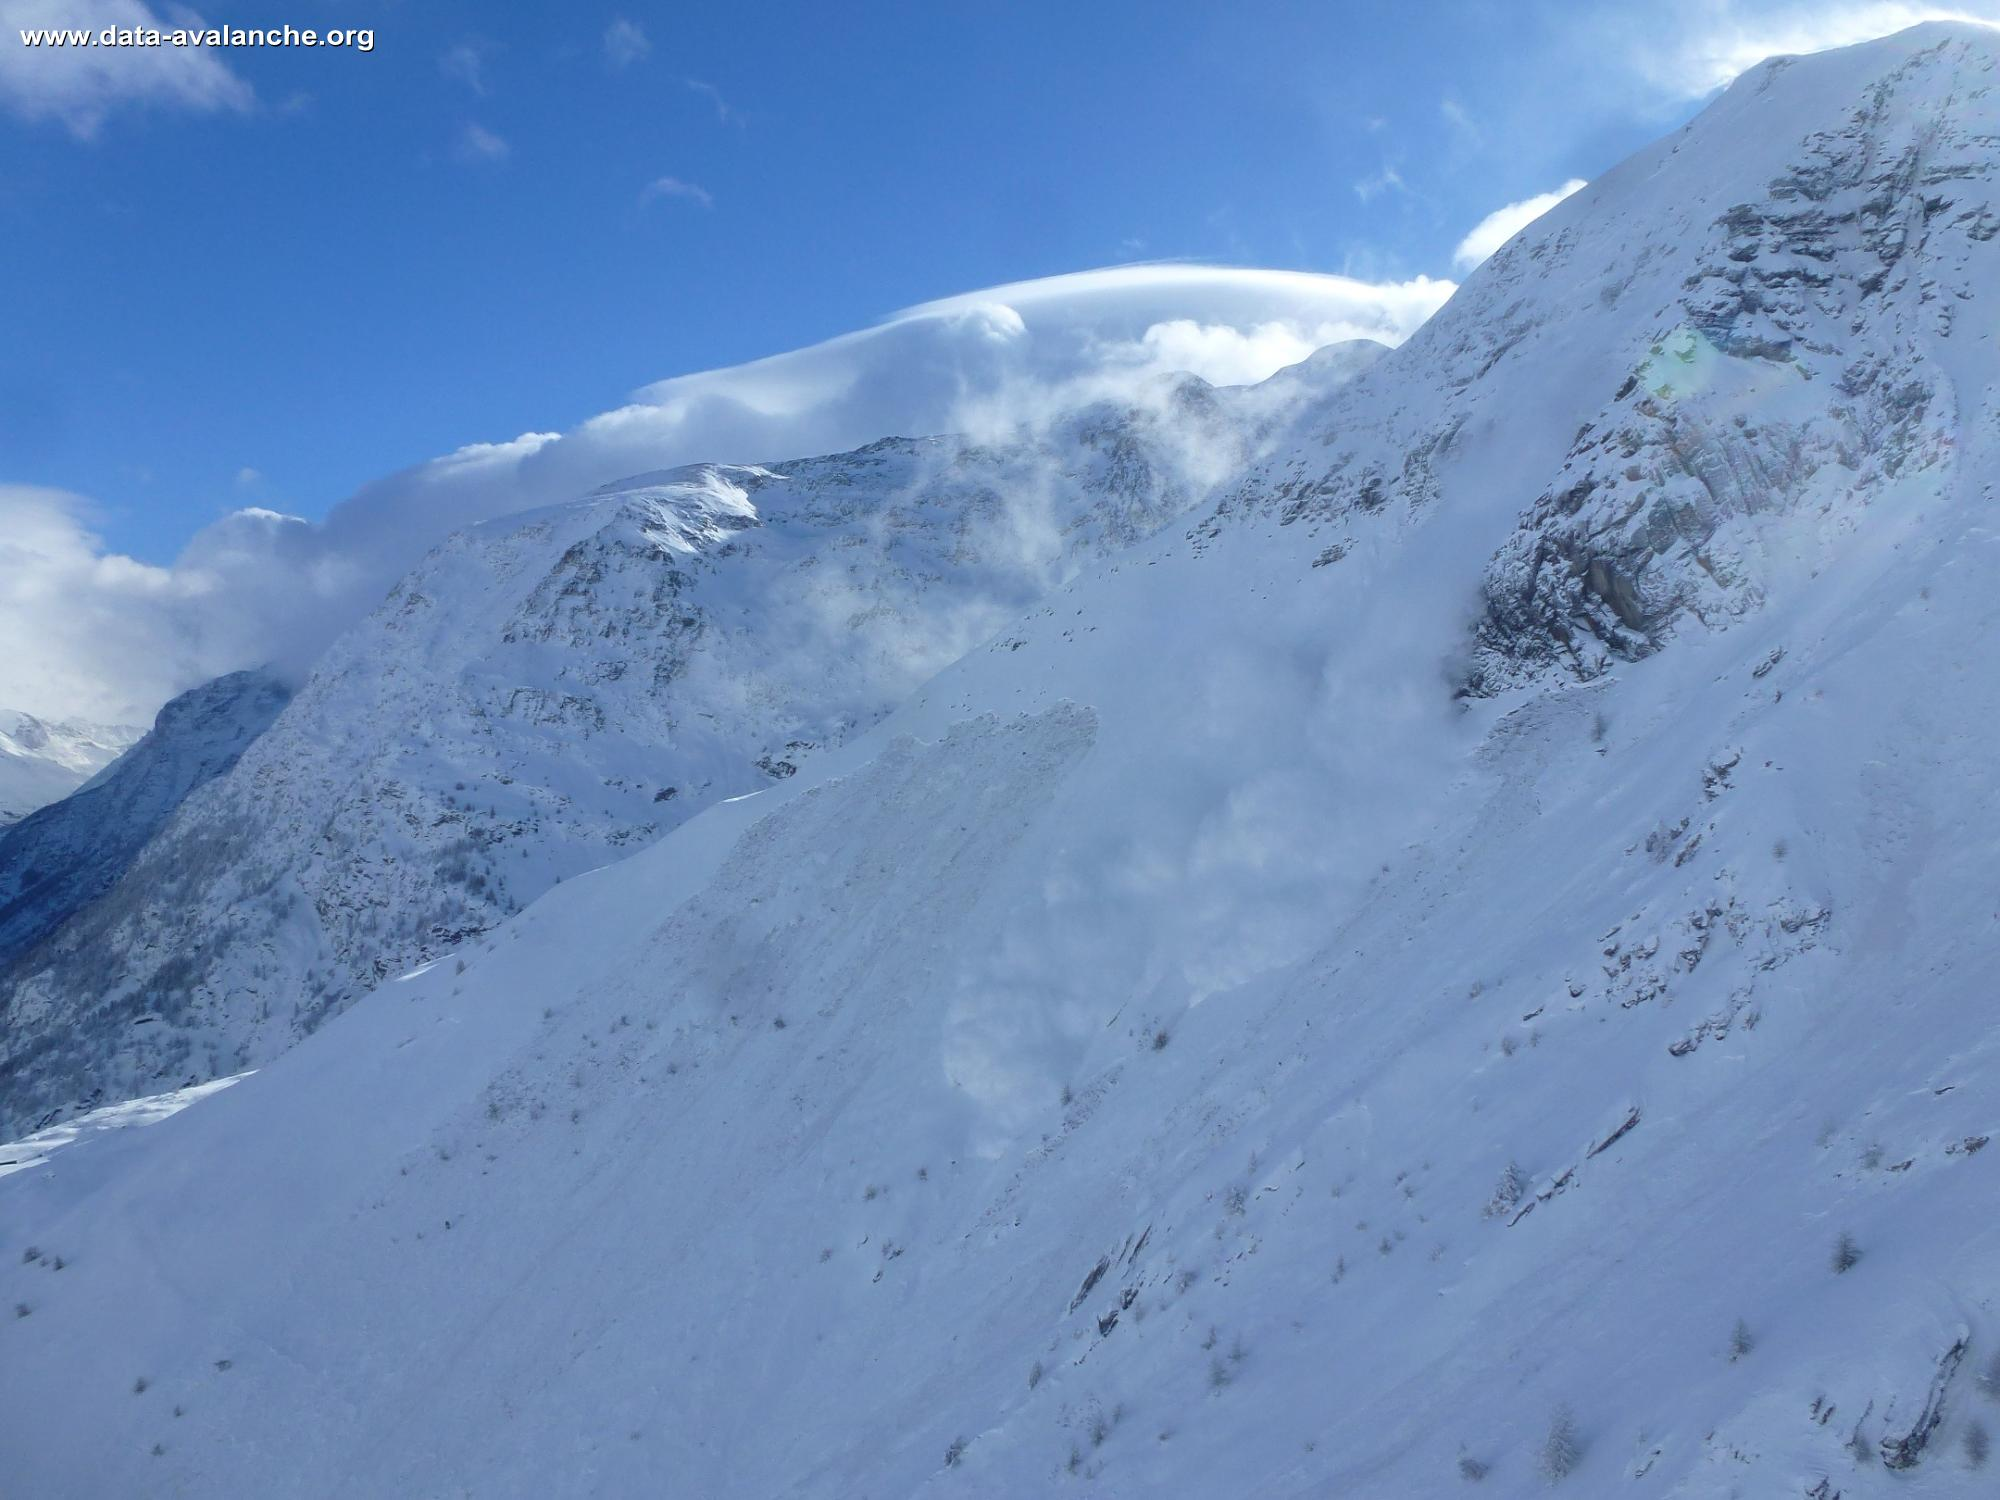 Avalanche Oisans, secteur Lac du Chambon, RS 1091 - Photo 1